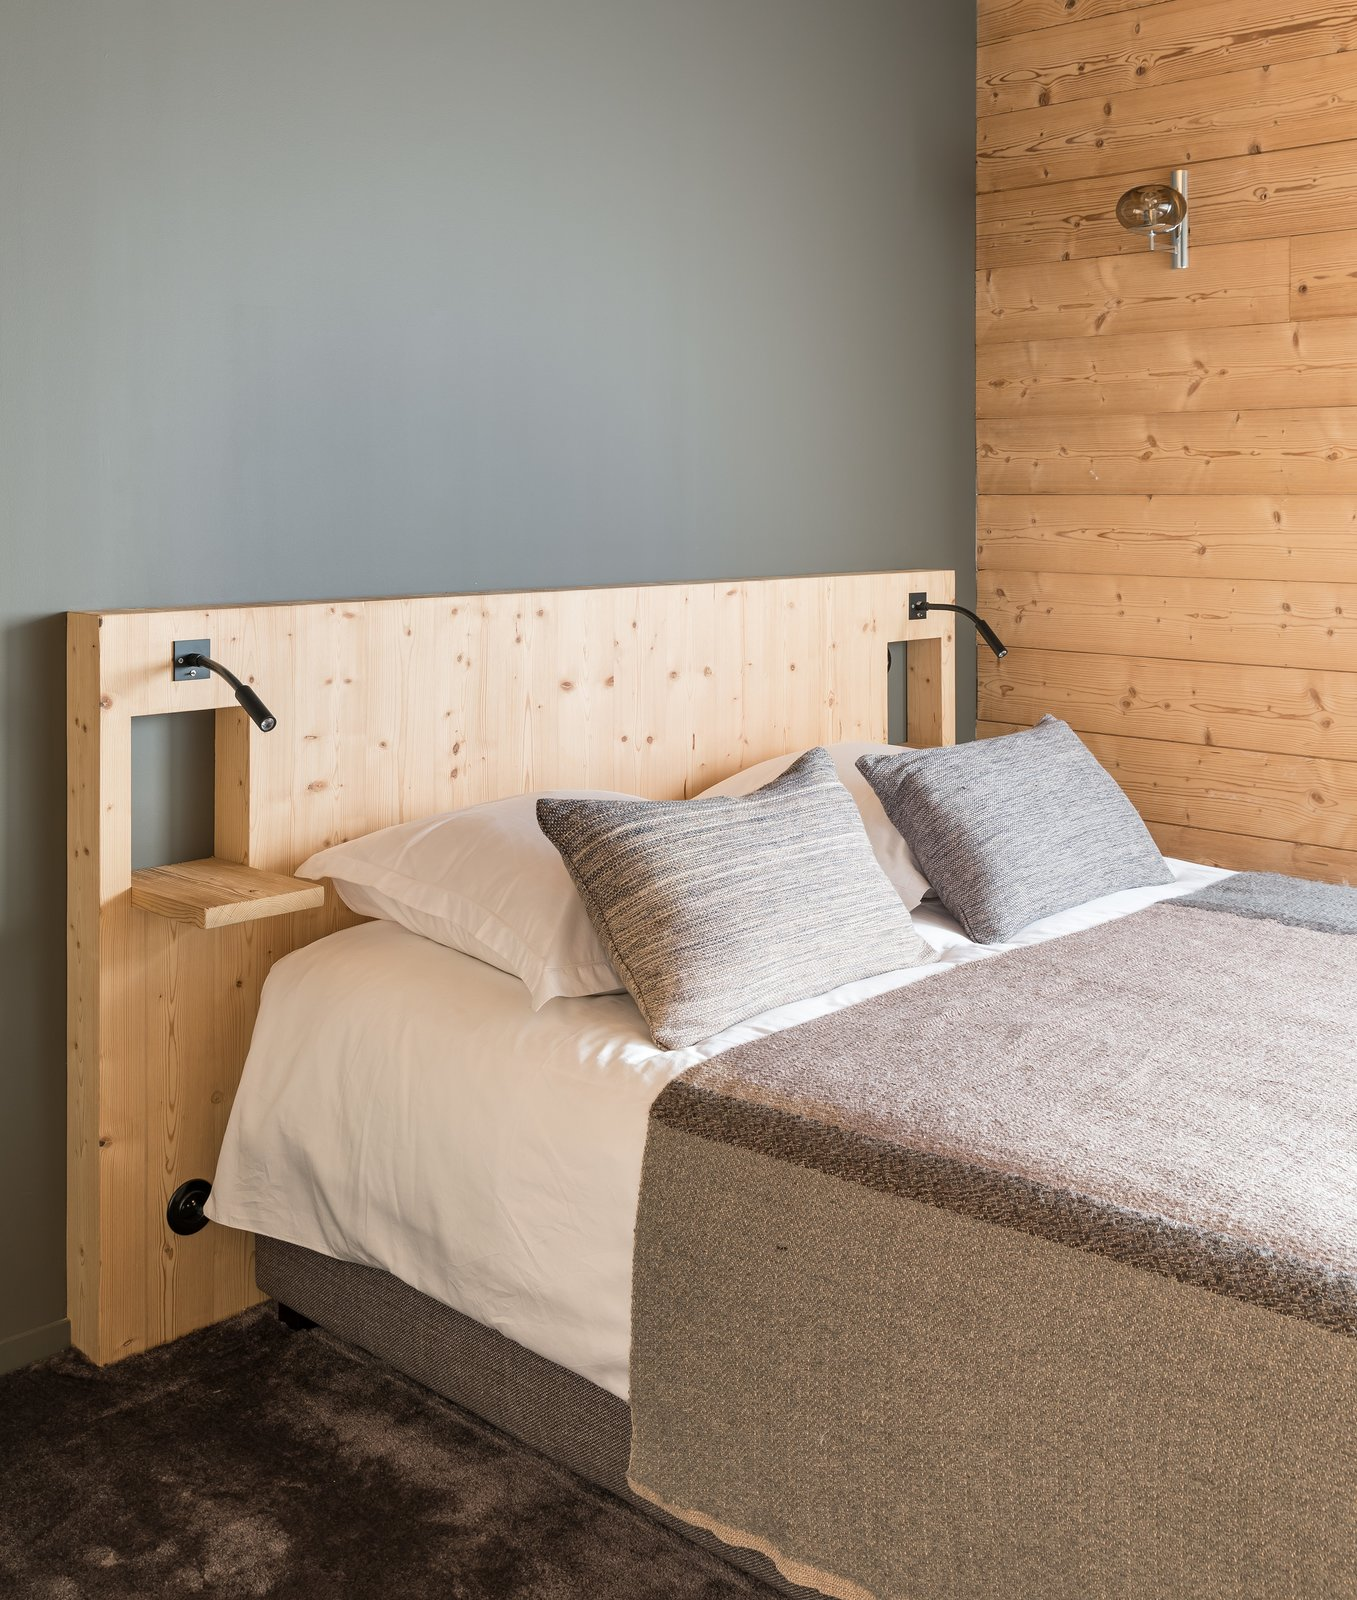 Tagged: Bedroom, Wall Lighting, Bed, and Carpet Floor.  Mountain House by studio razavi architecture